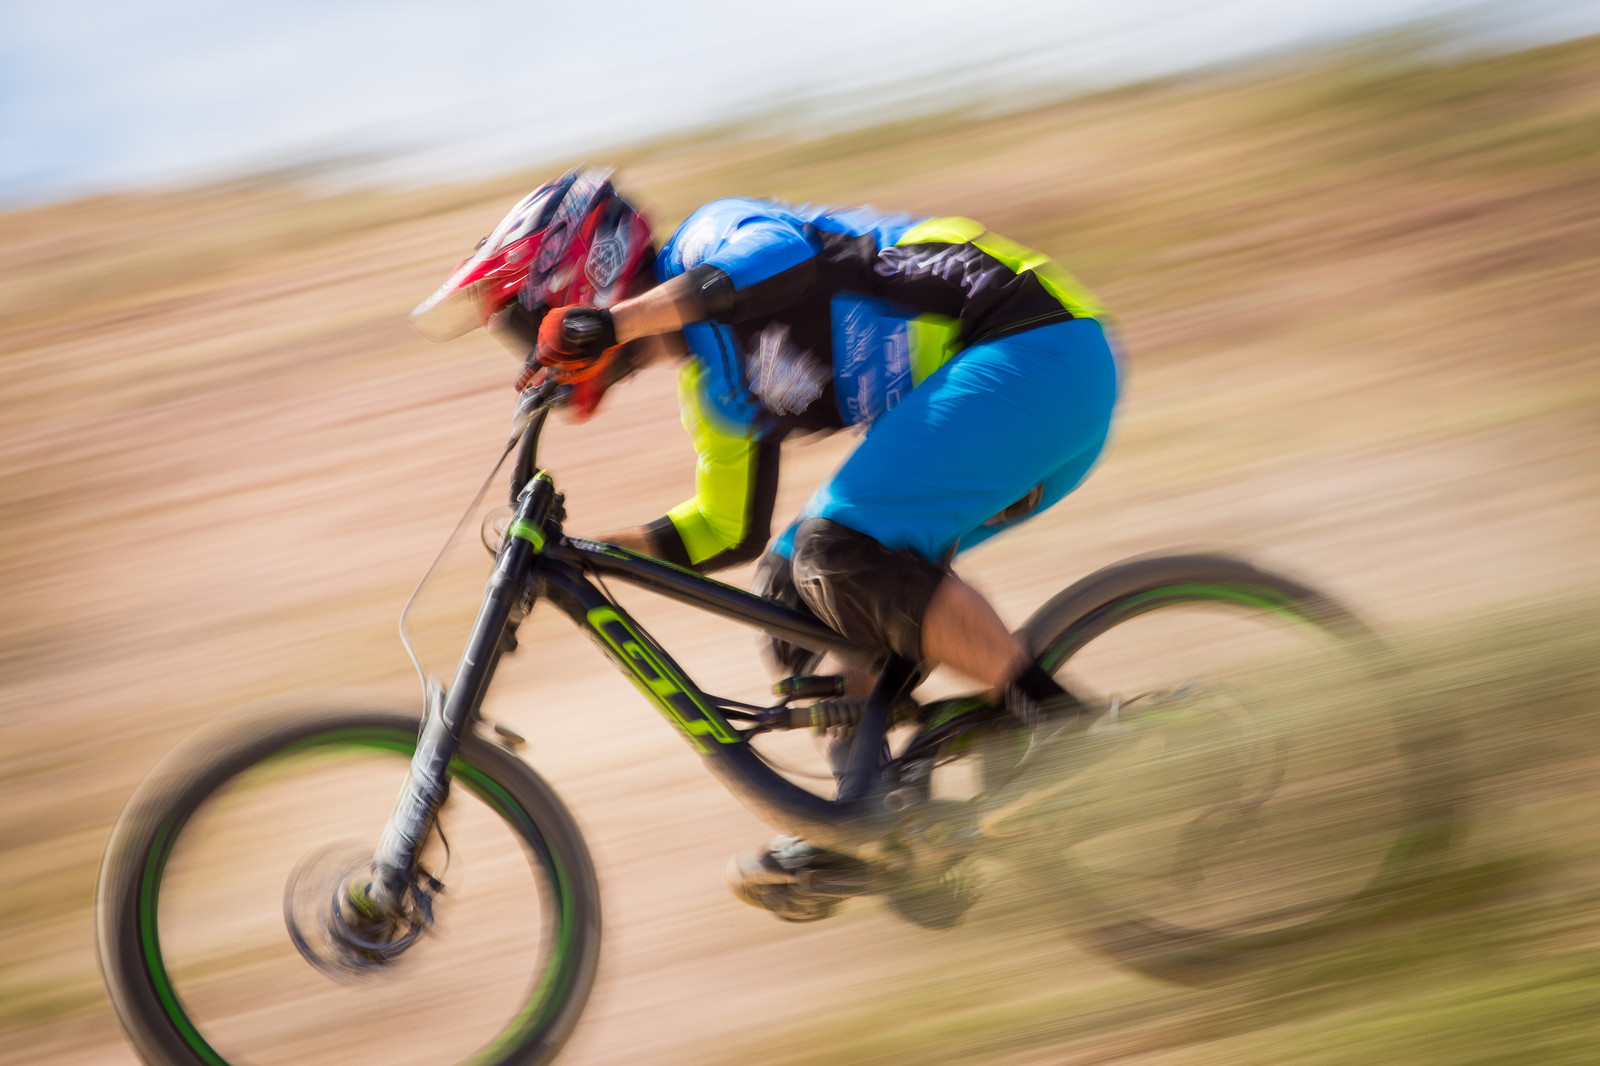 2017 Reaper Madness DH at Bootleg Canyon-58 - 2017 Reaper Madness DH Photos - Mountain Biking Pictures - Vital MTB